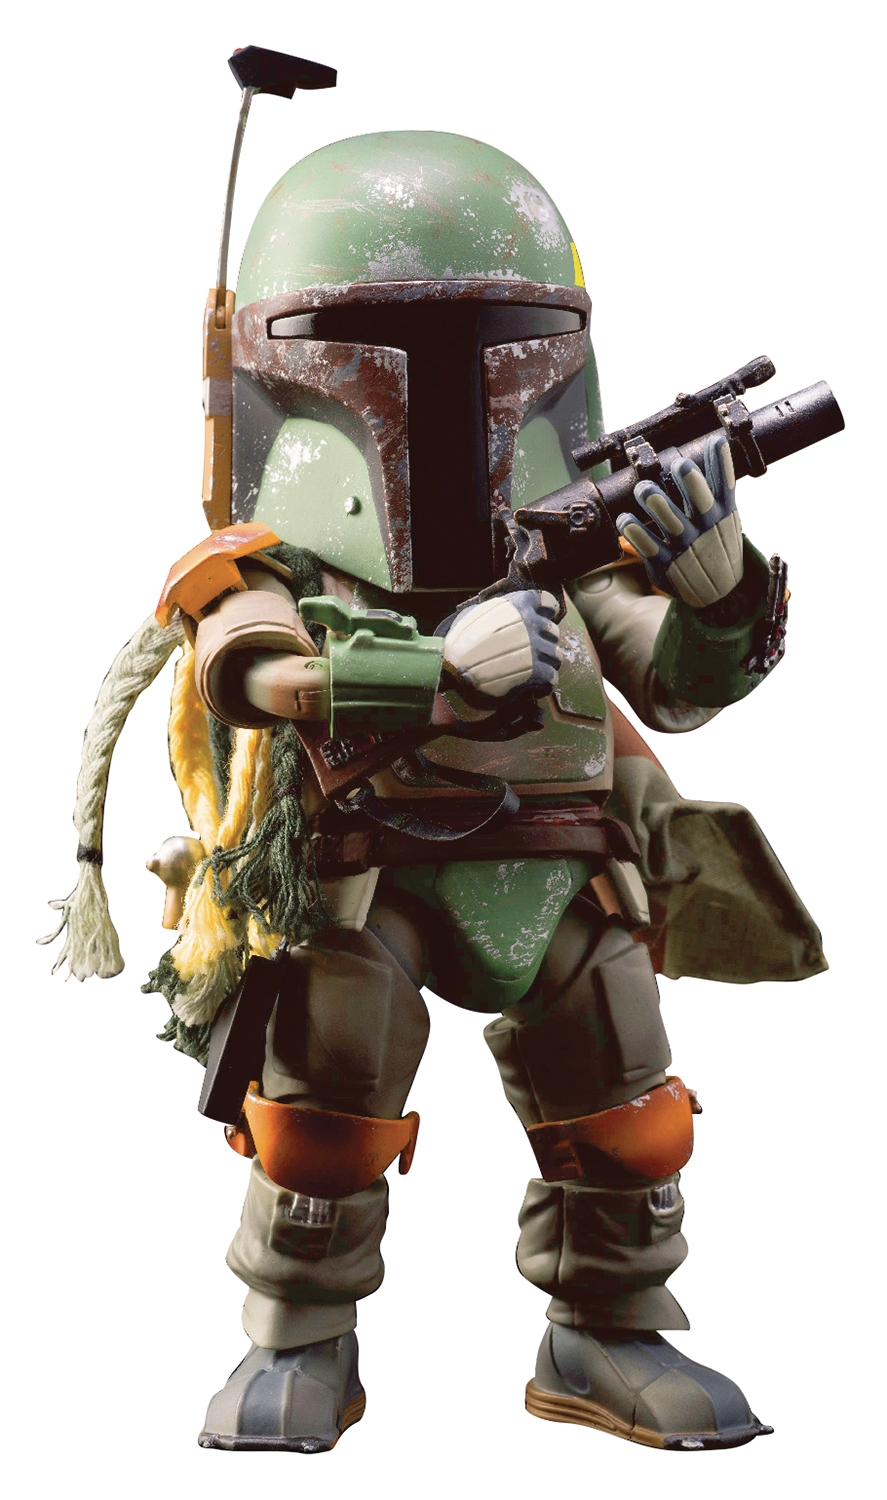 Star Wars: Boba Fett from Star Wars Episode V: Empire Strikes Back